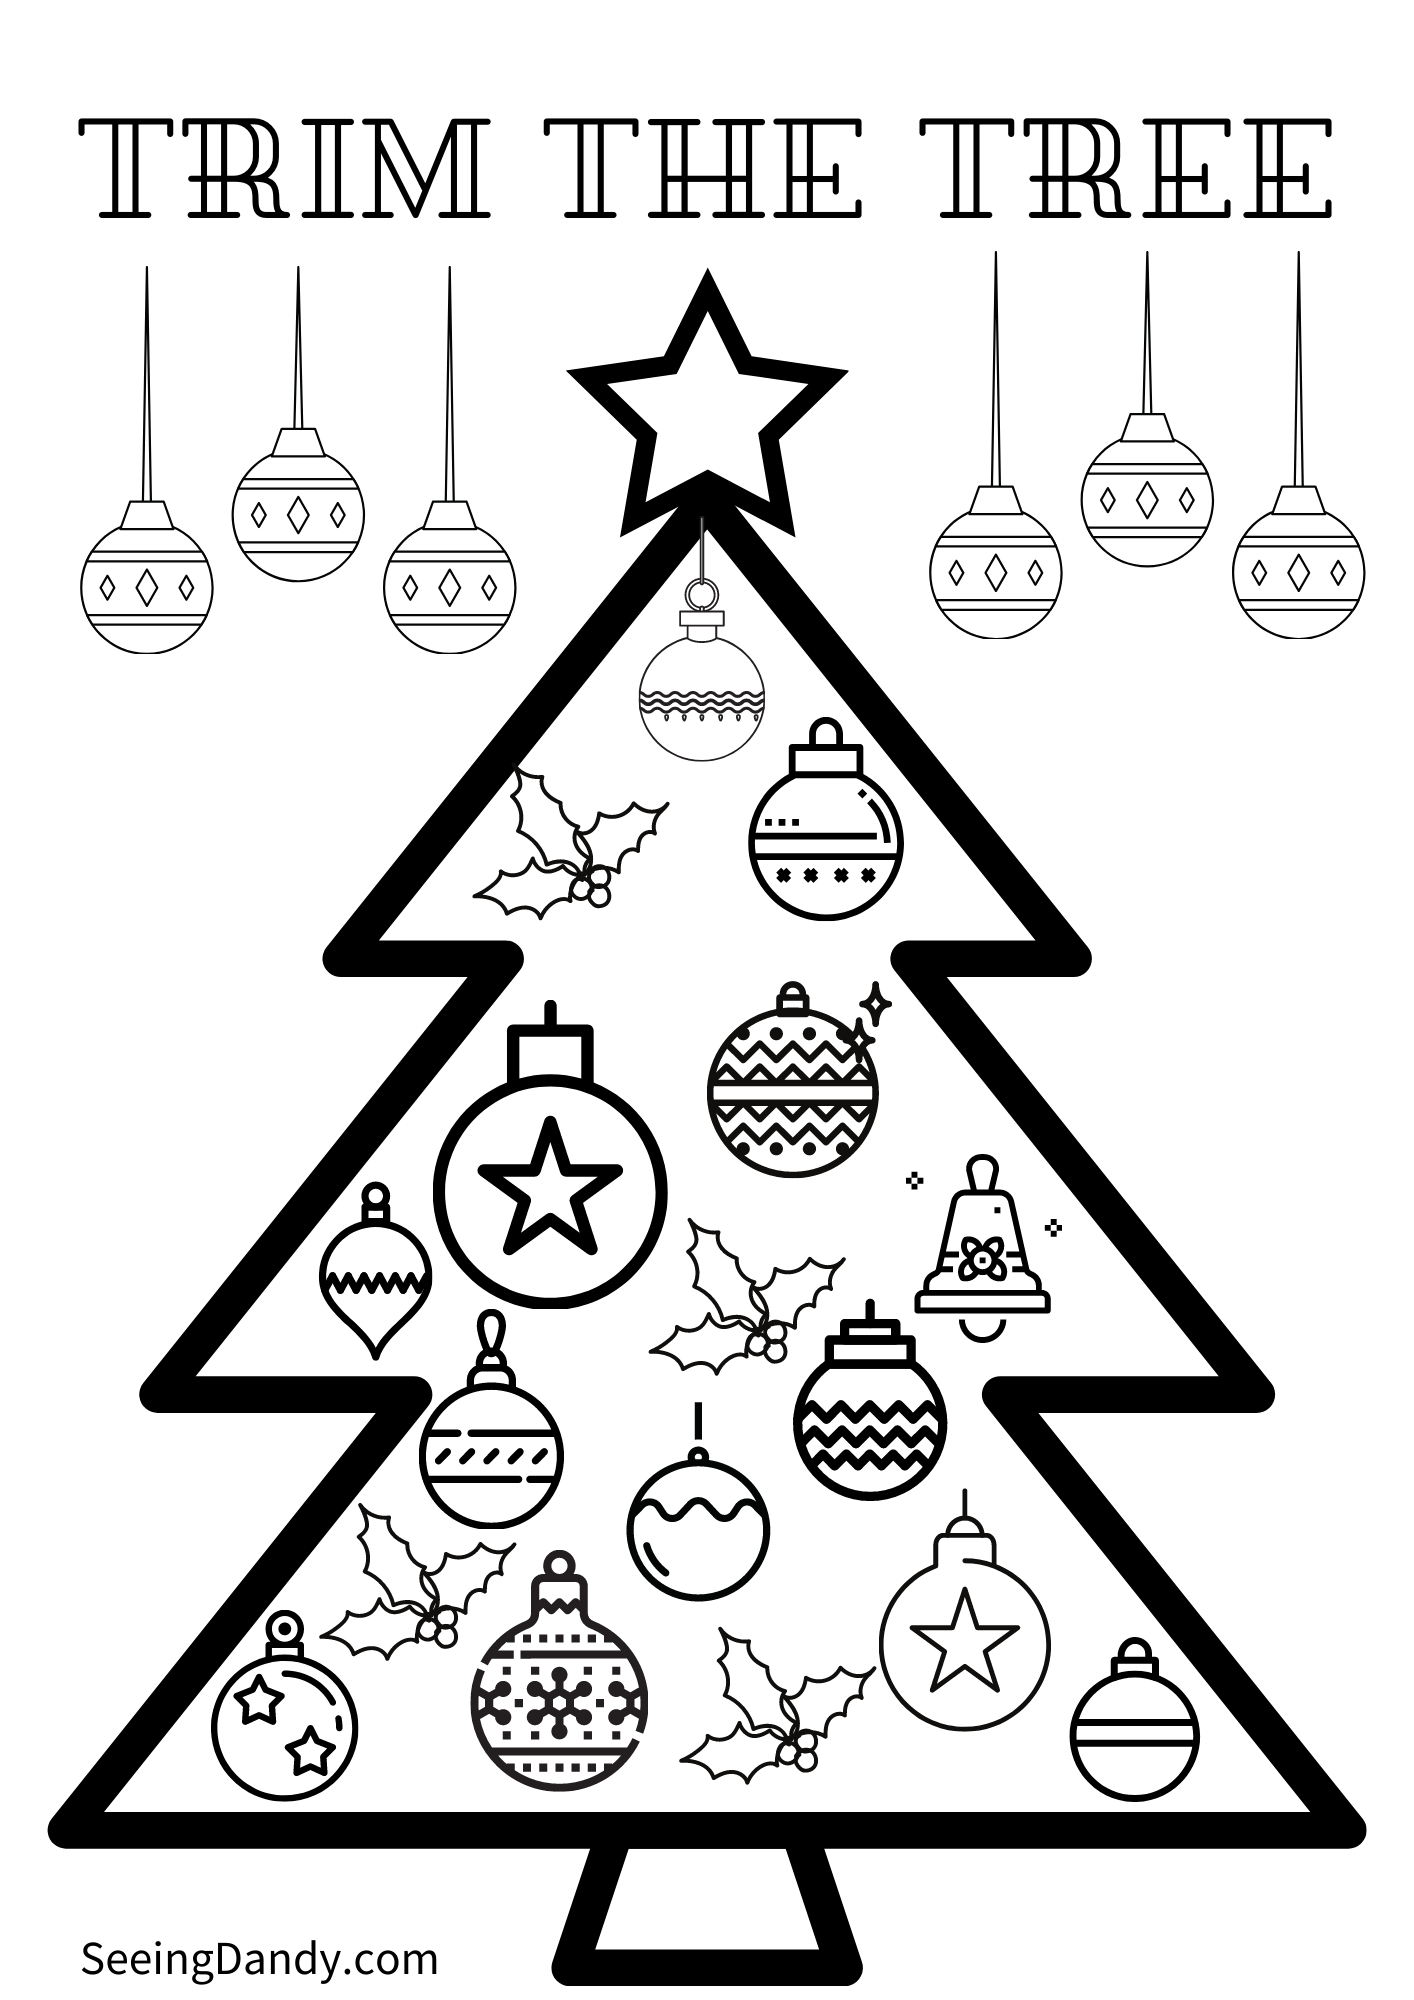 kids christmas coloring page, diy coloring sheet, trim the tree, free printable, coloring sheet, kids crafts, school christmas party, holiday fun